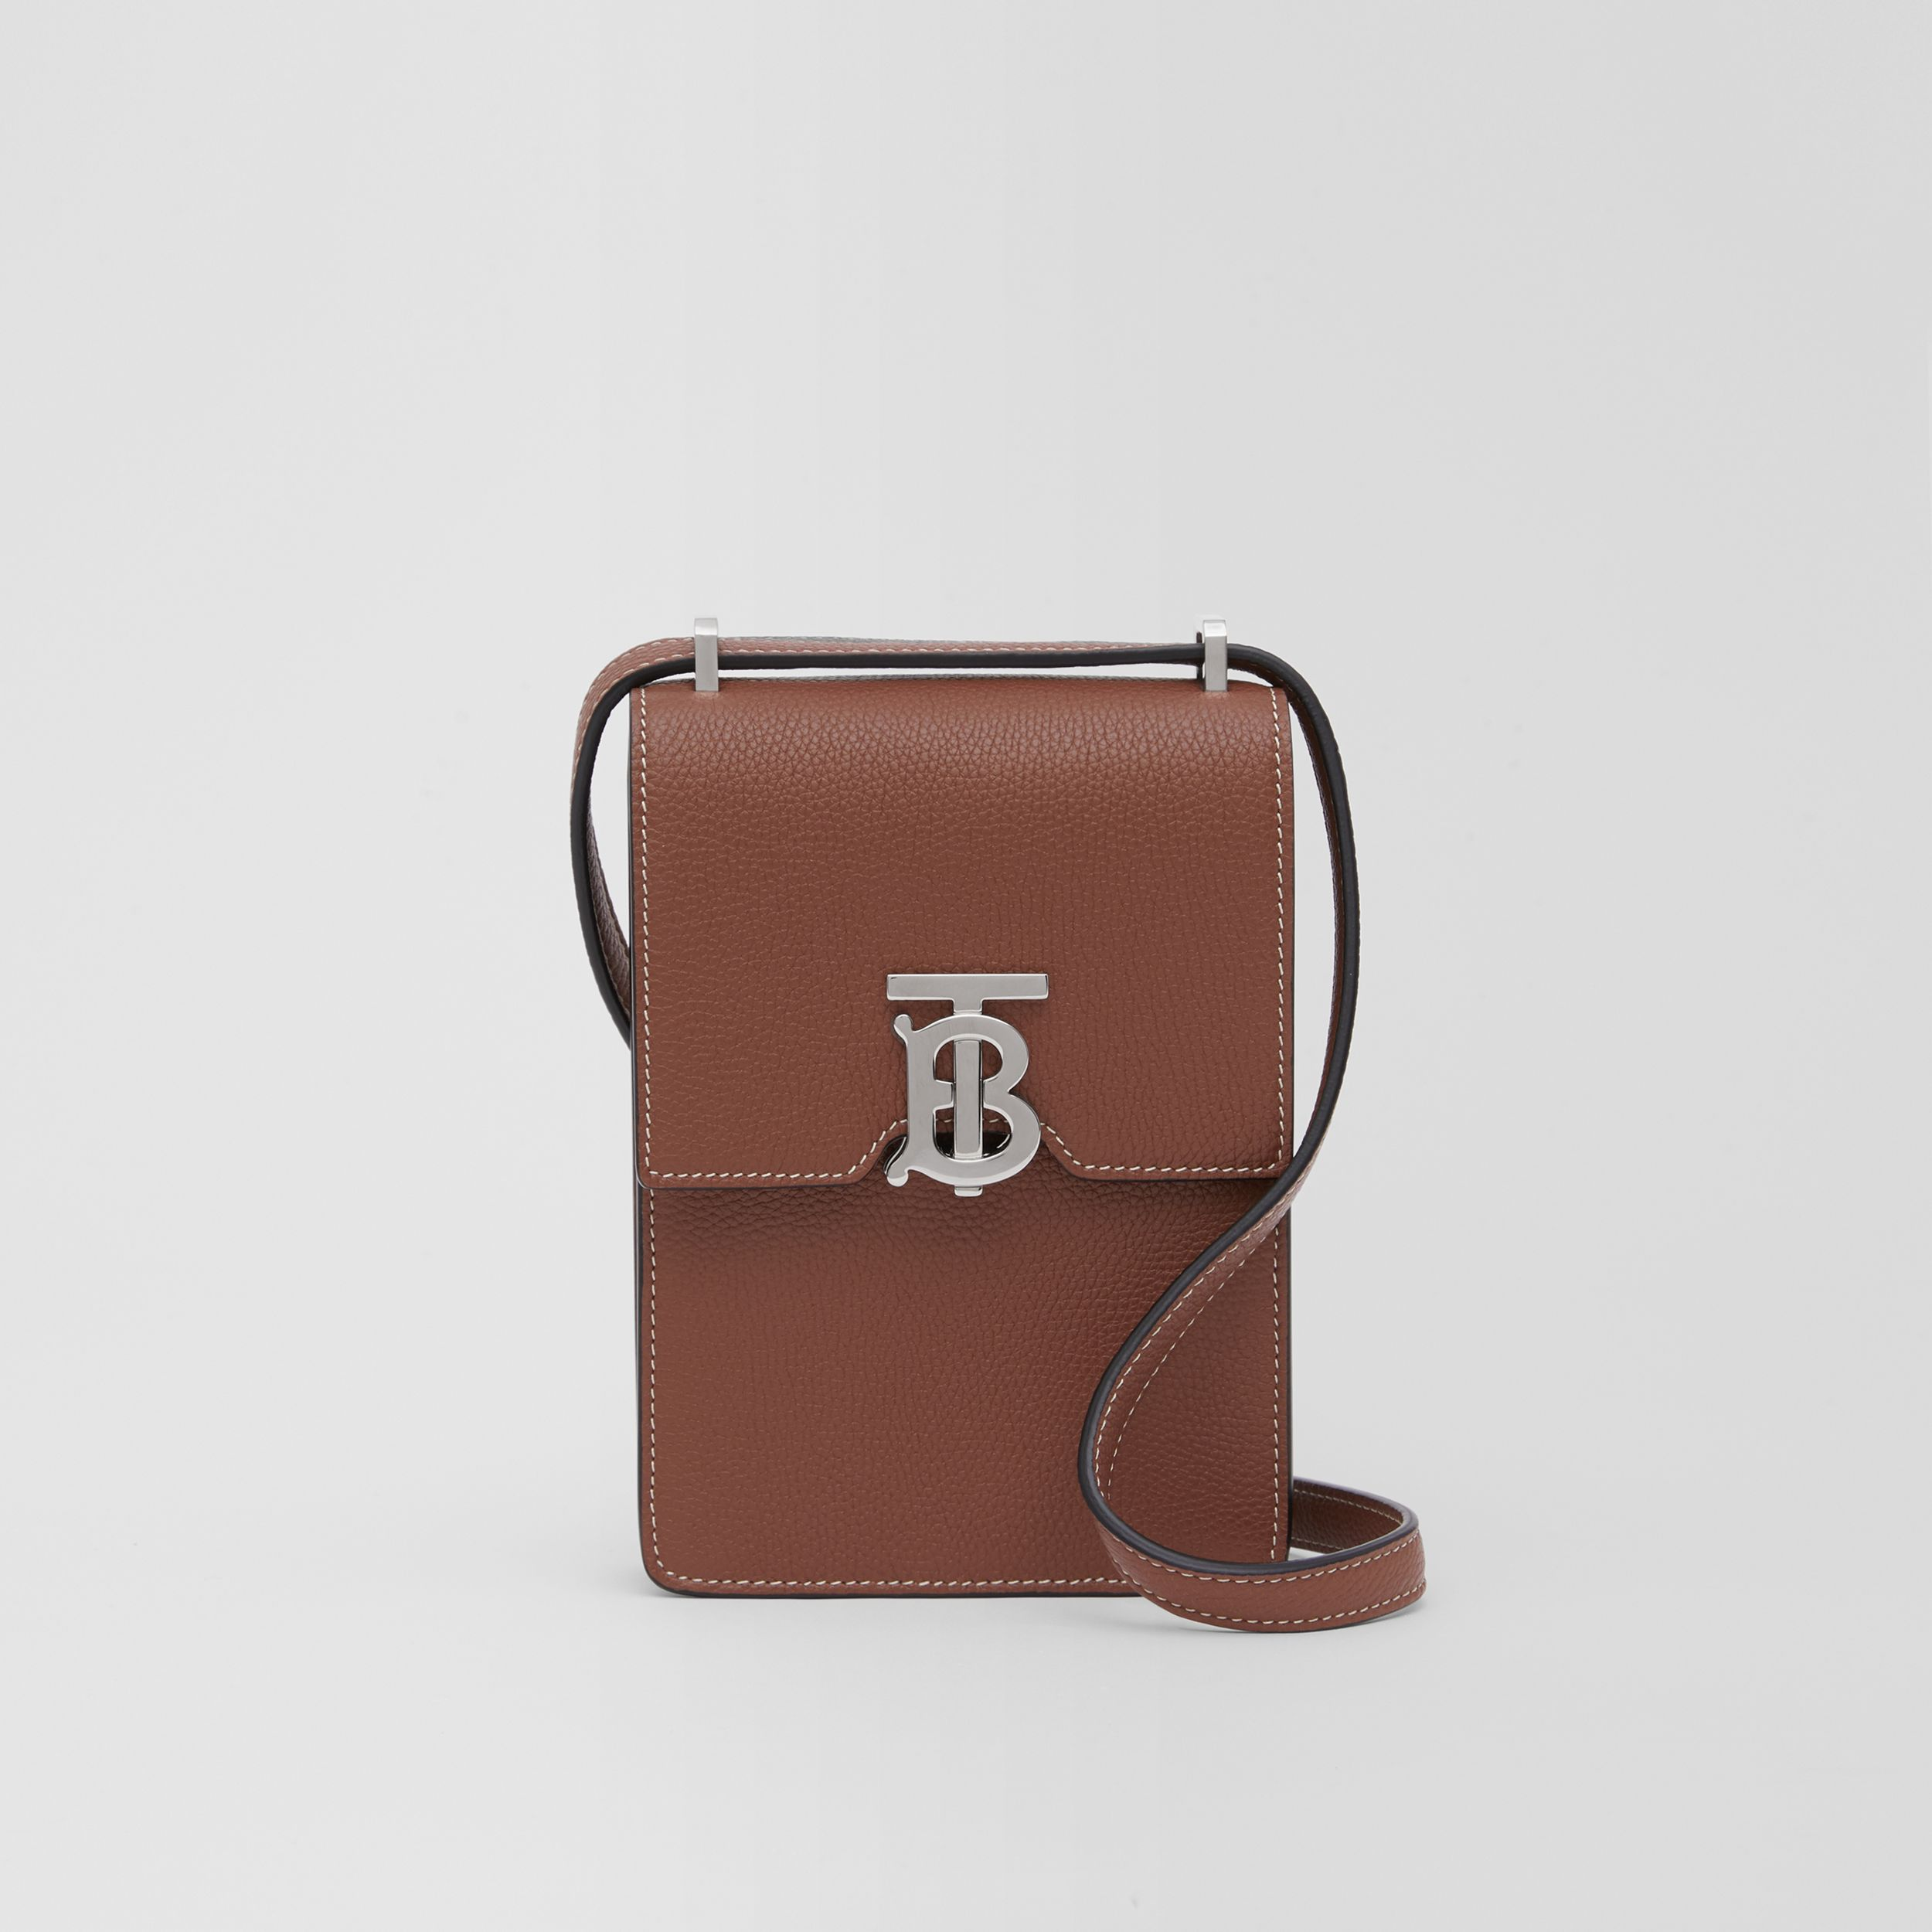 Grainy Leather Robin Bag in Tan | Burberry - 1